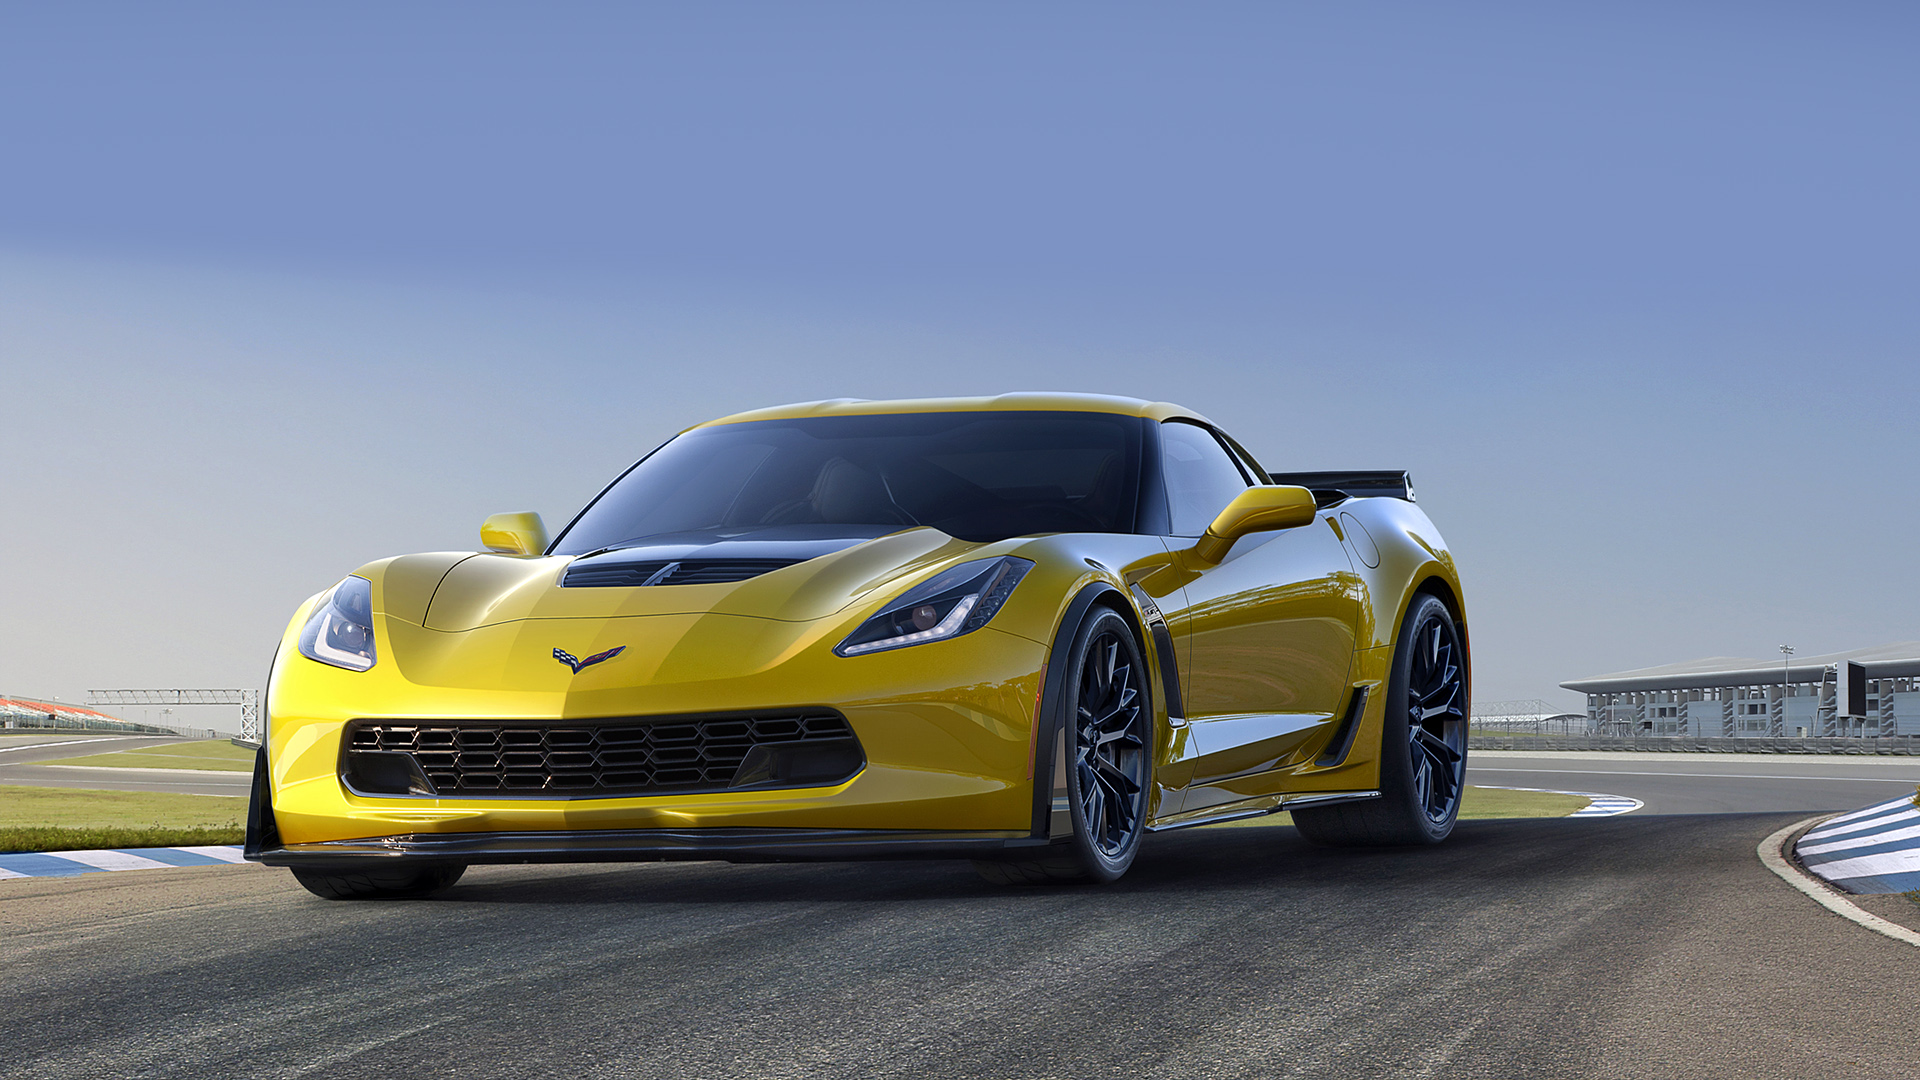 Corvette Z06 HD Wallpaper - WallpaperSafari